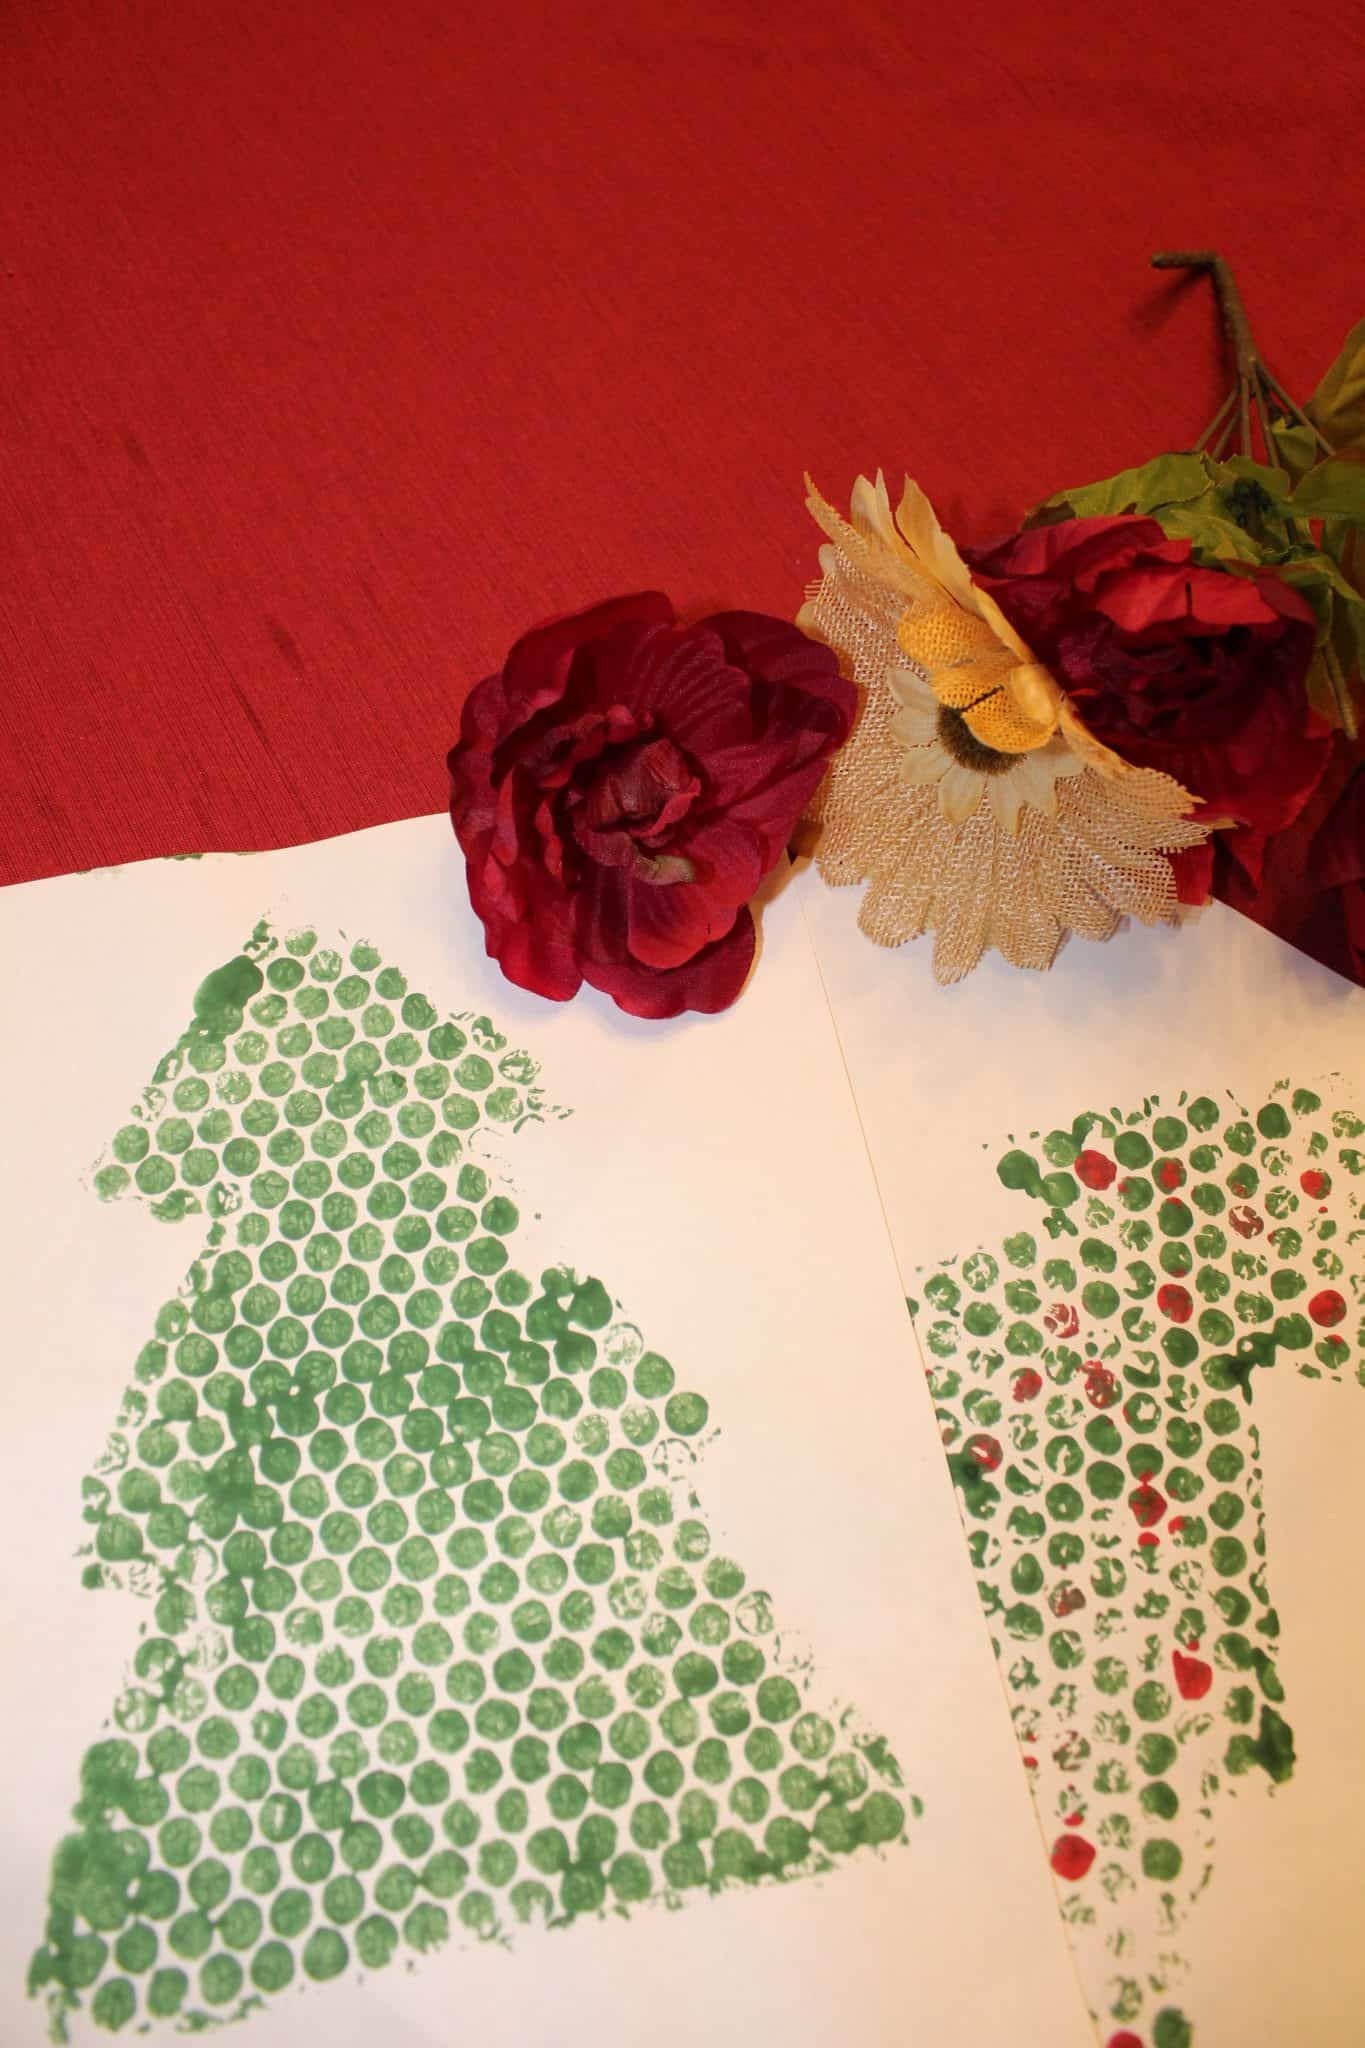 White paper with green painted outline of a Christmas tree.